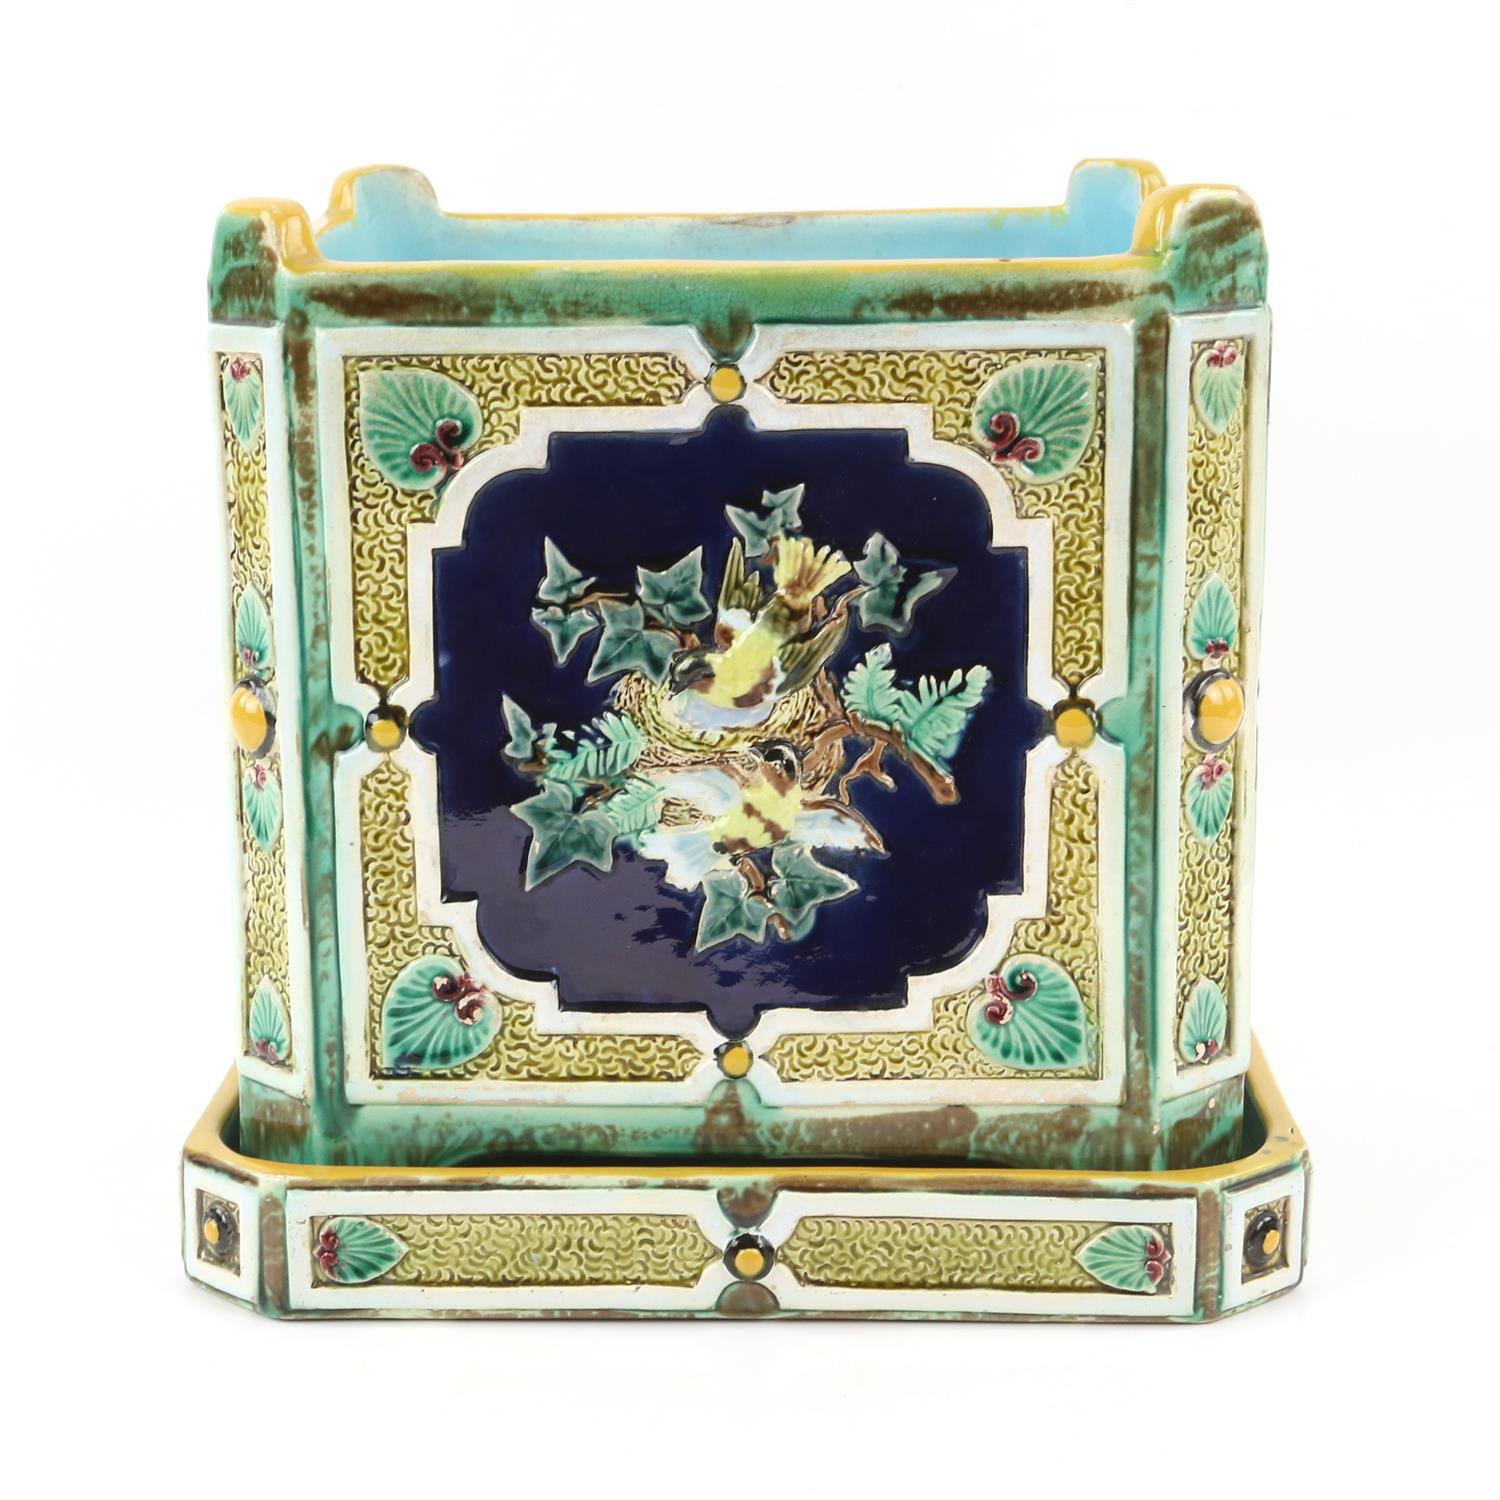 Minton style planter on stand, decorated with pairs of birds on nests. 22cm High, 21.5cm wide, 21. - Image 2 of 10